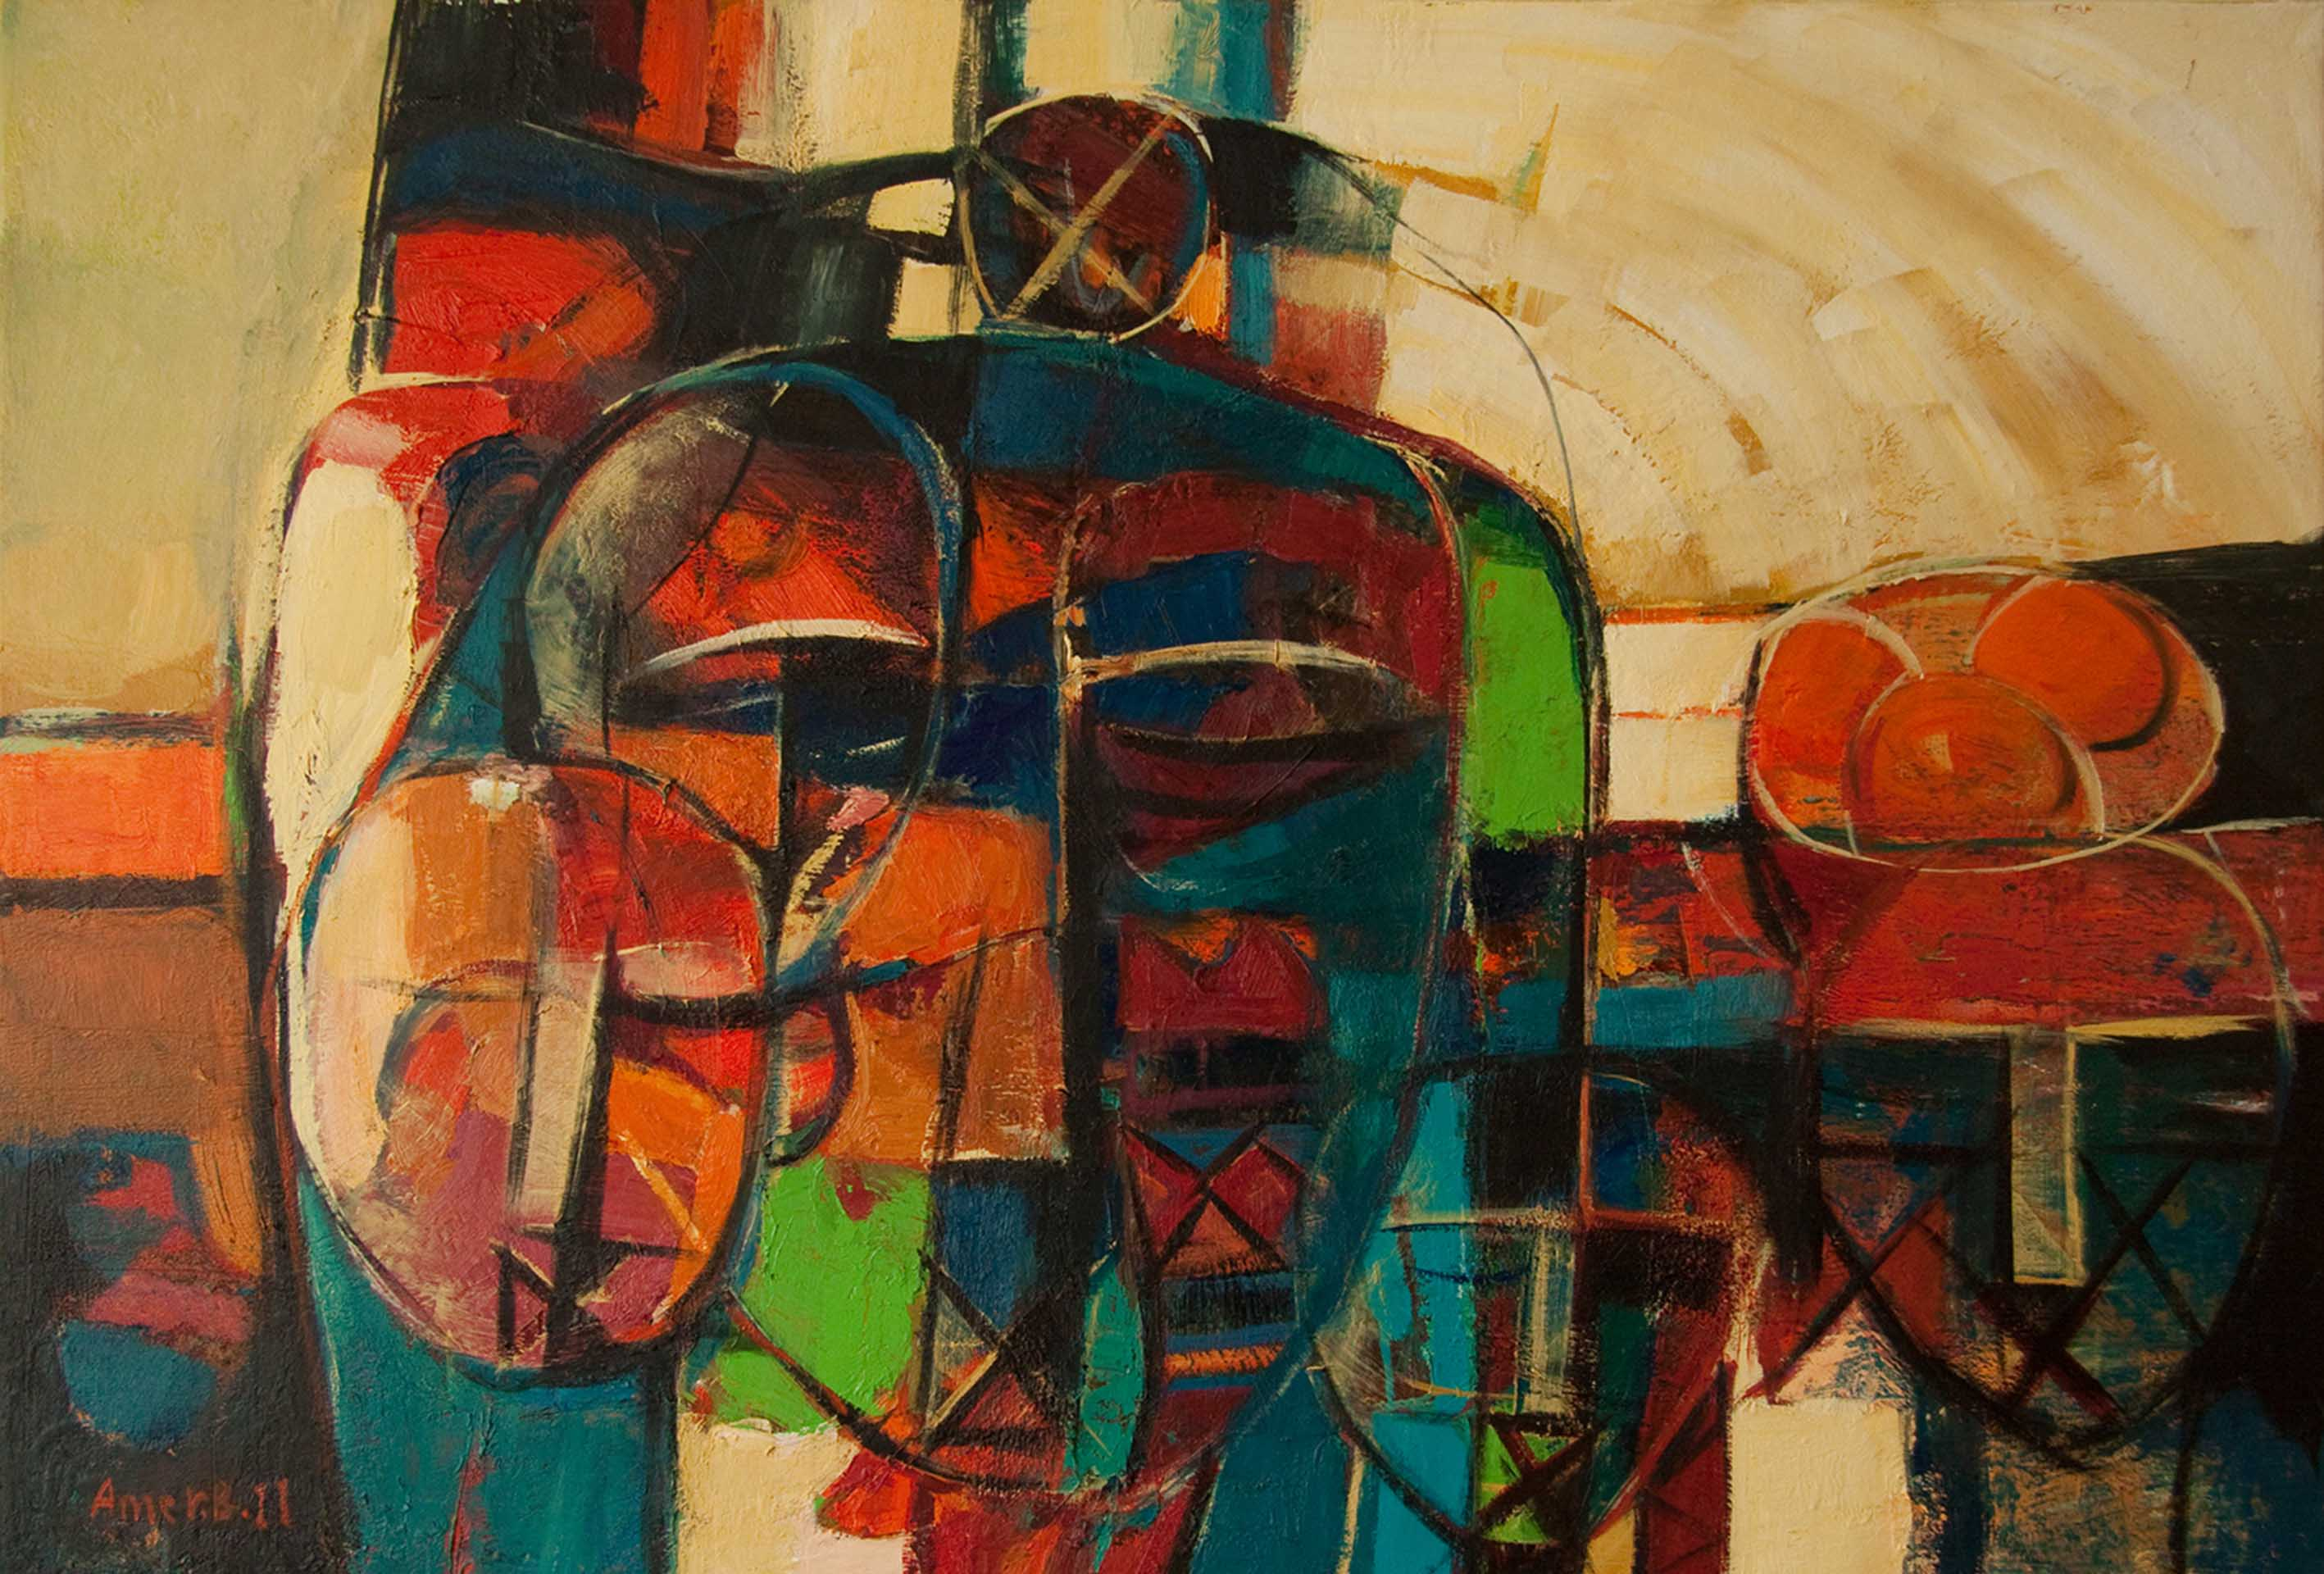 41 - 100x70 cm - Oil on canvas - 2012